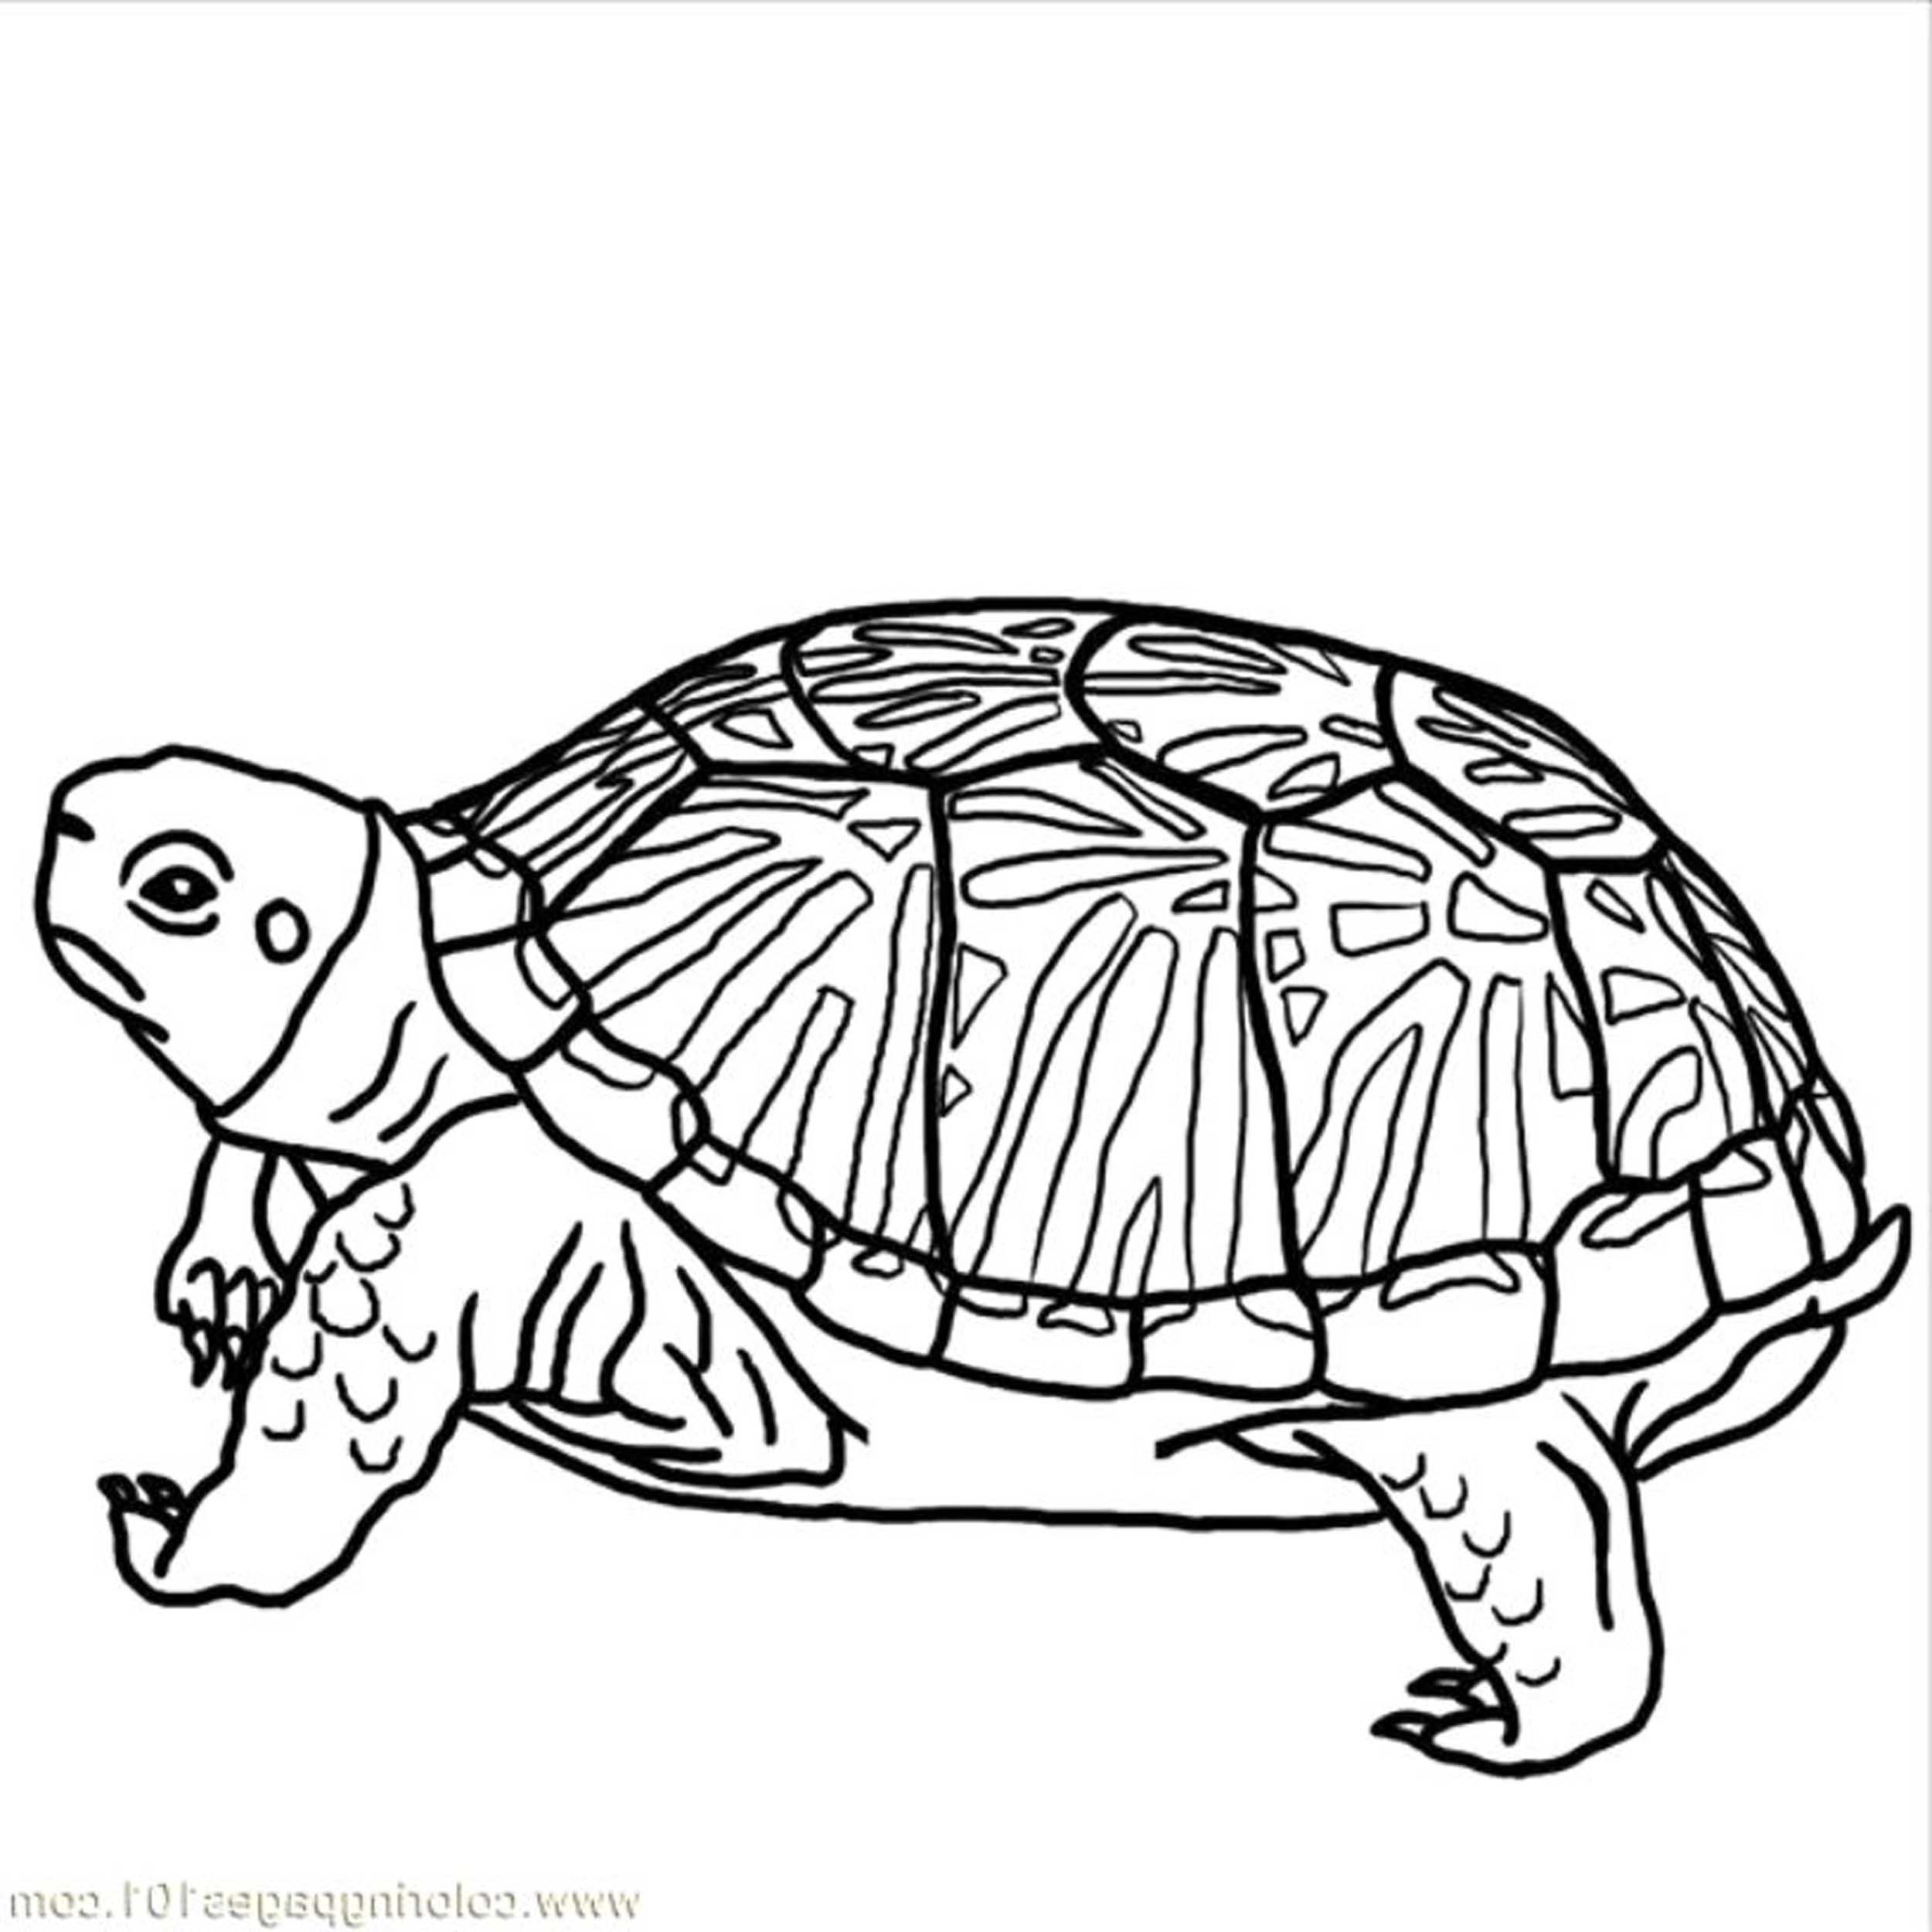 tortoise coloring page turtle hatchling illustrations royalty free vector coloring page tortoise